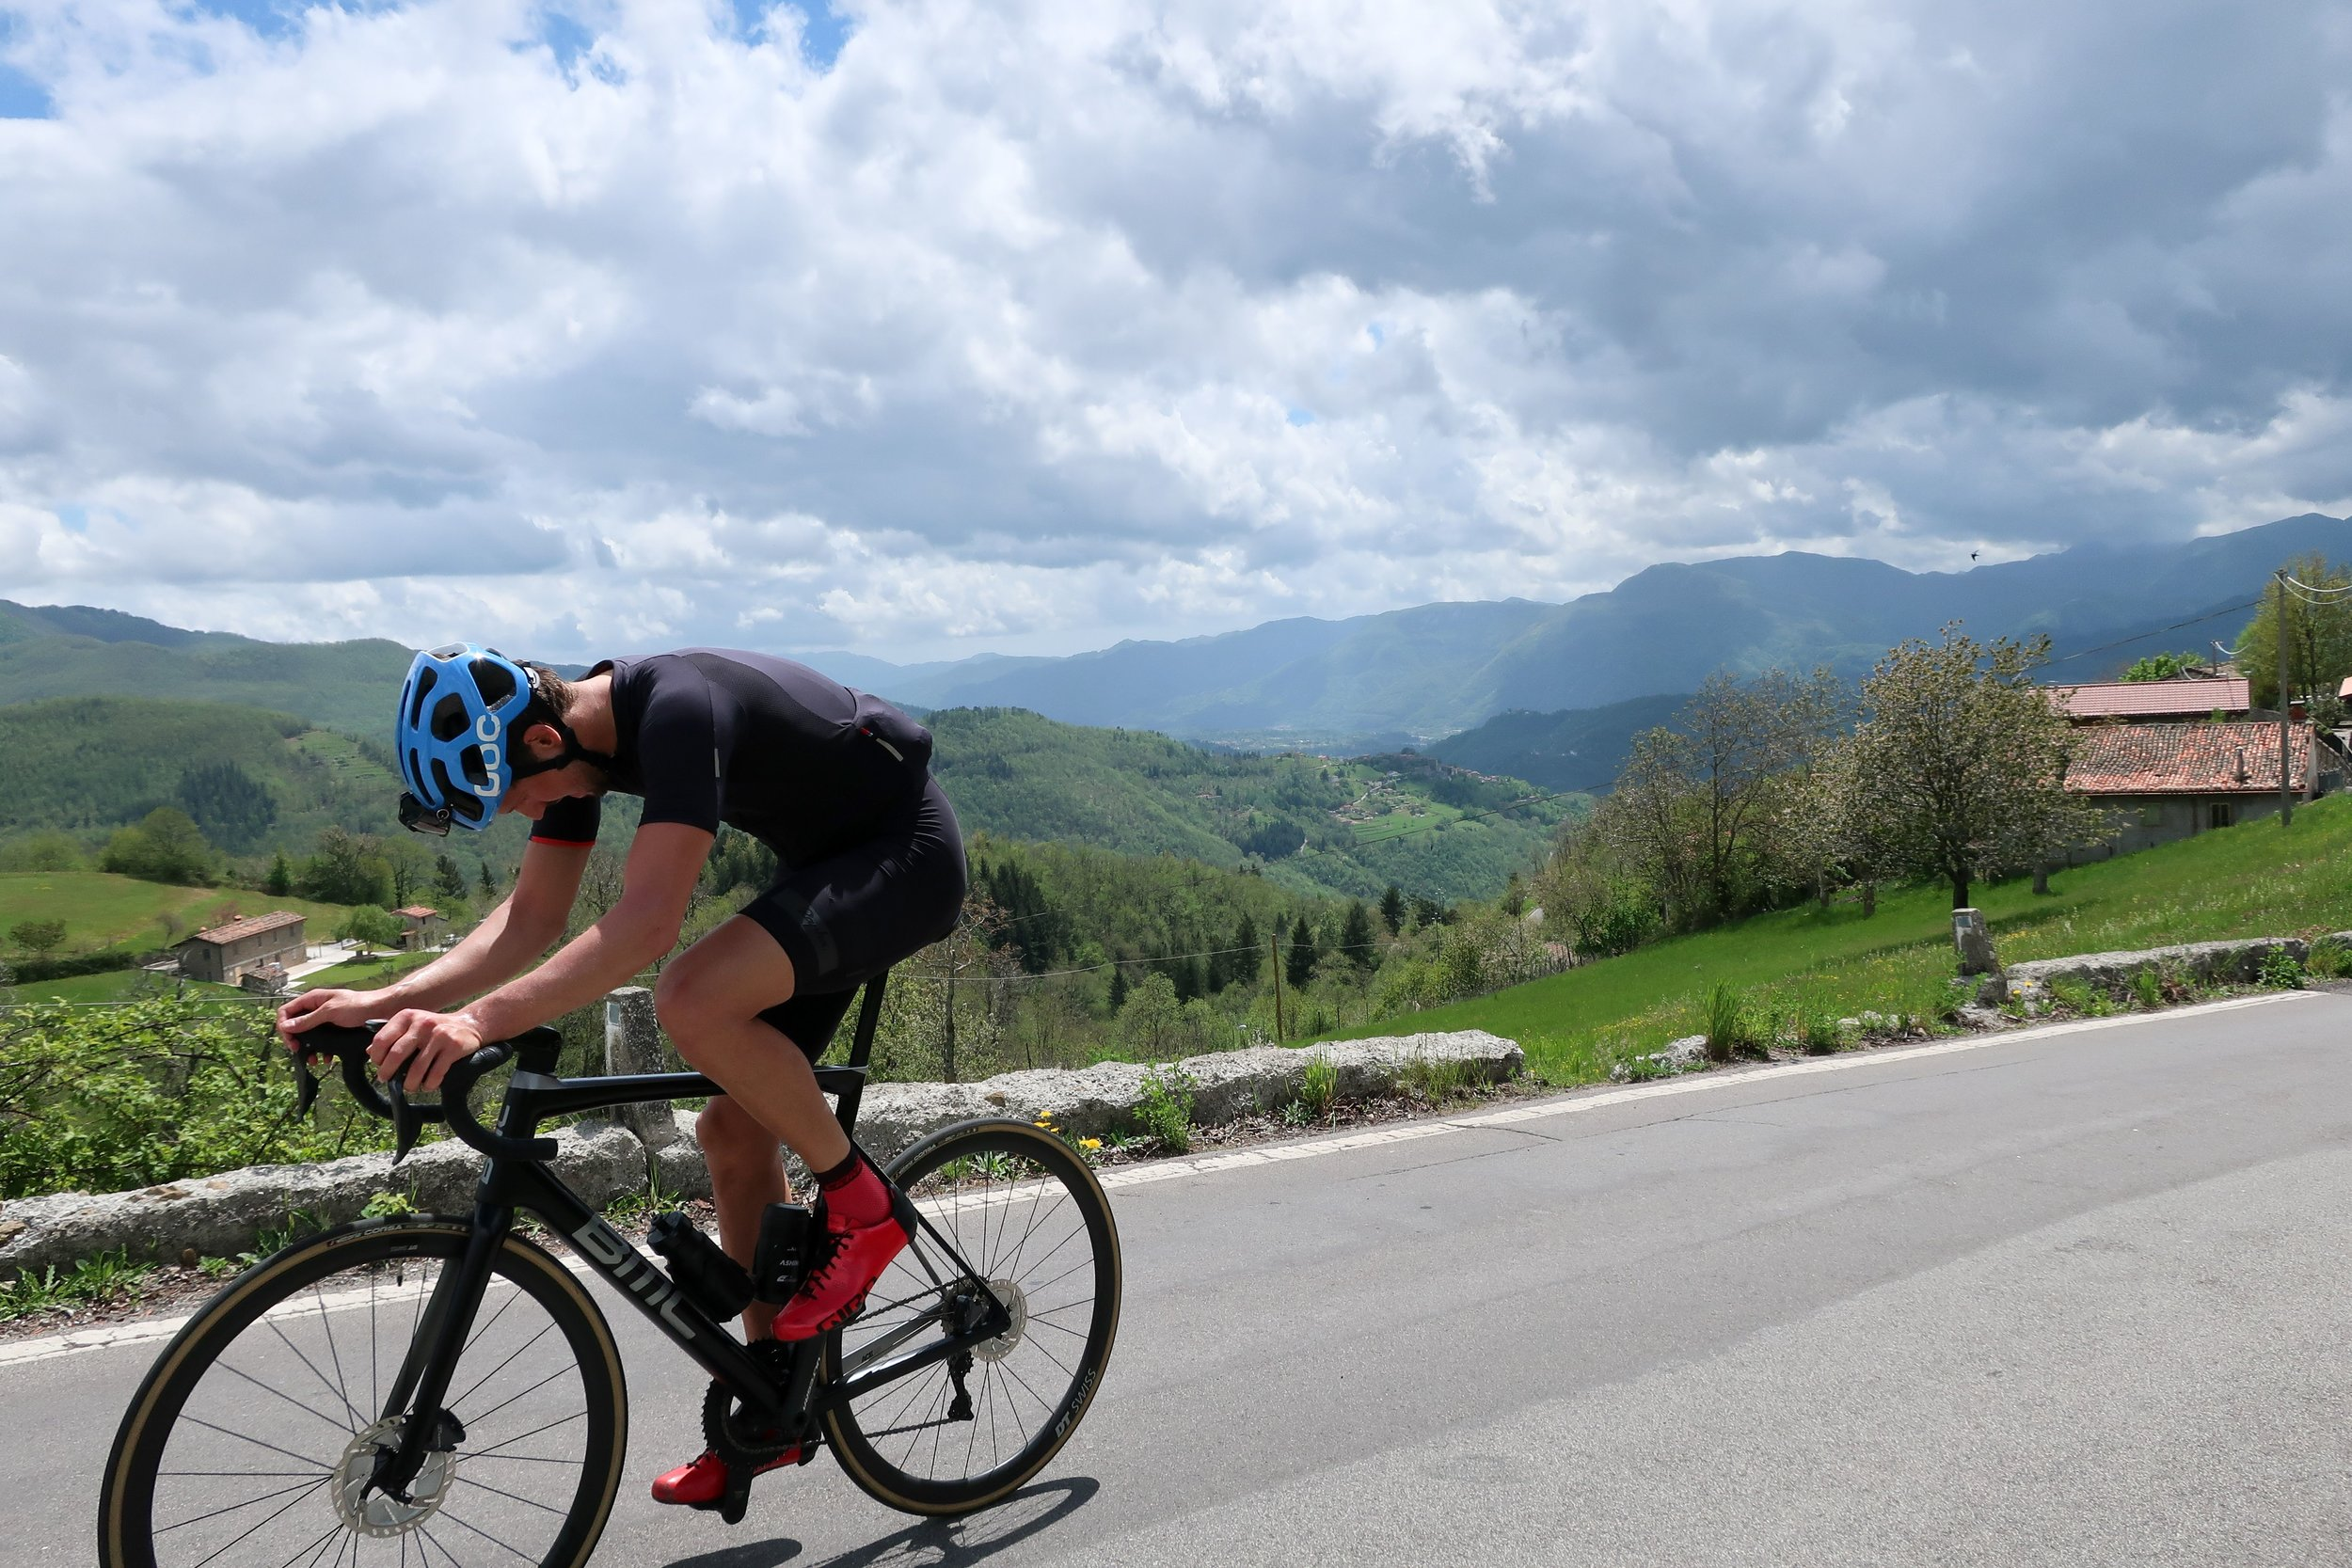 1. San Pellegrino in Alpe - 12km, avg. 9.1%Easily the most difficult HC climb in the vicinity of Lucca with sections at 17.7%. She has a gentler and kinder sister named Passo delle Radici, but she's not spunky nor feisty like San Pellegrino. The closer you get to the top, the harder she makes you work. And once you're finally there, don't plan on just coasting home. No no. Then you ride up the backside of Abetone until